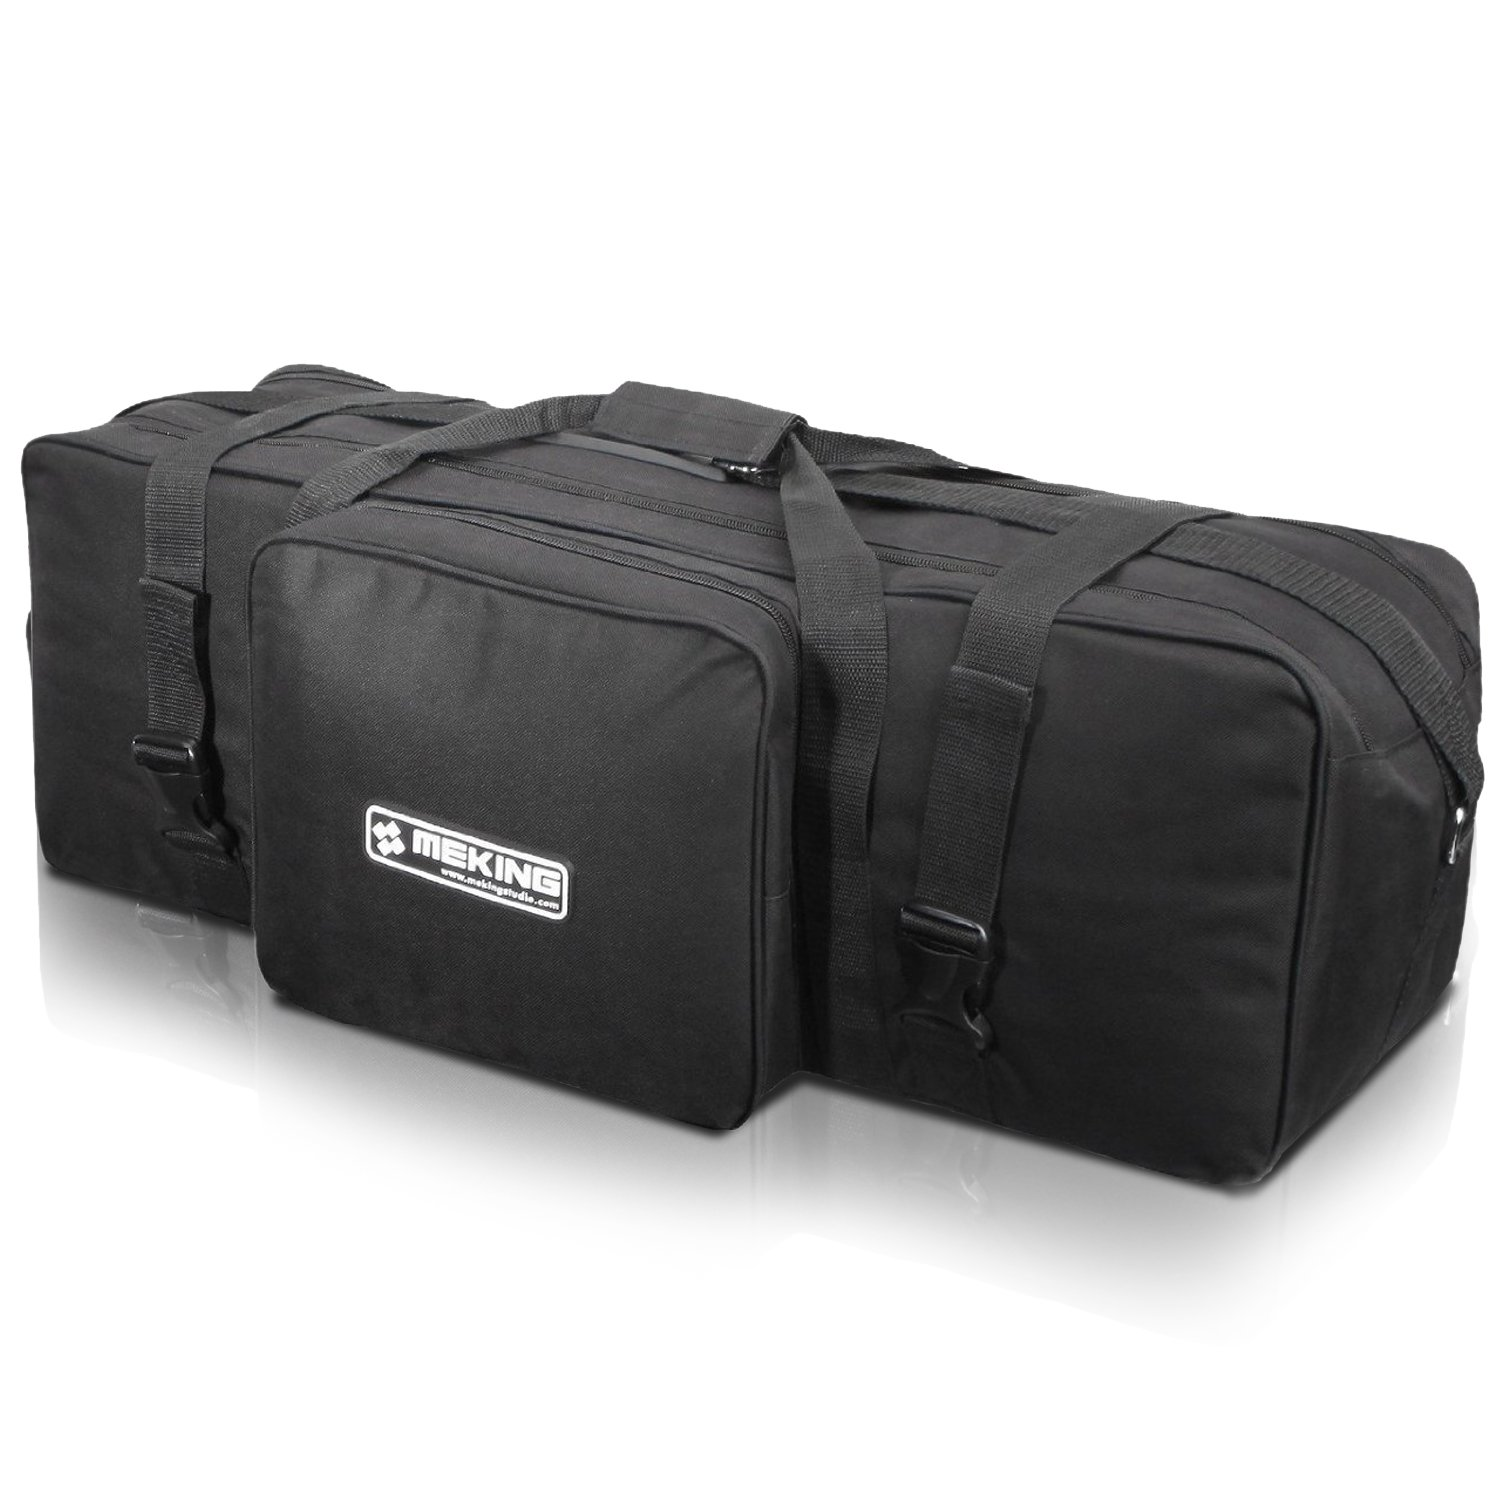 Selens Black Large Portable Photography Equipment Zipper Bag with Pocket for Light Stands, Umbrellas, Tripods and Studio Accessories